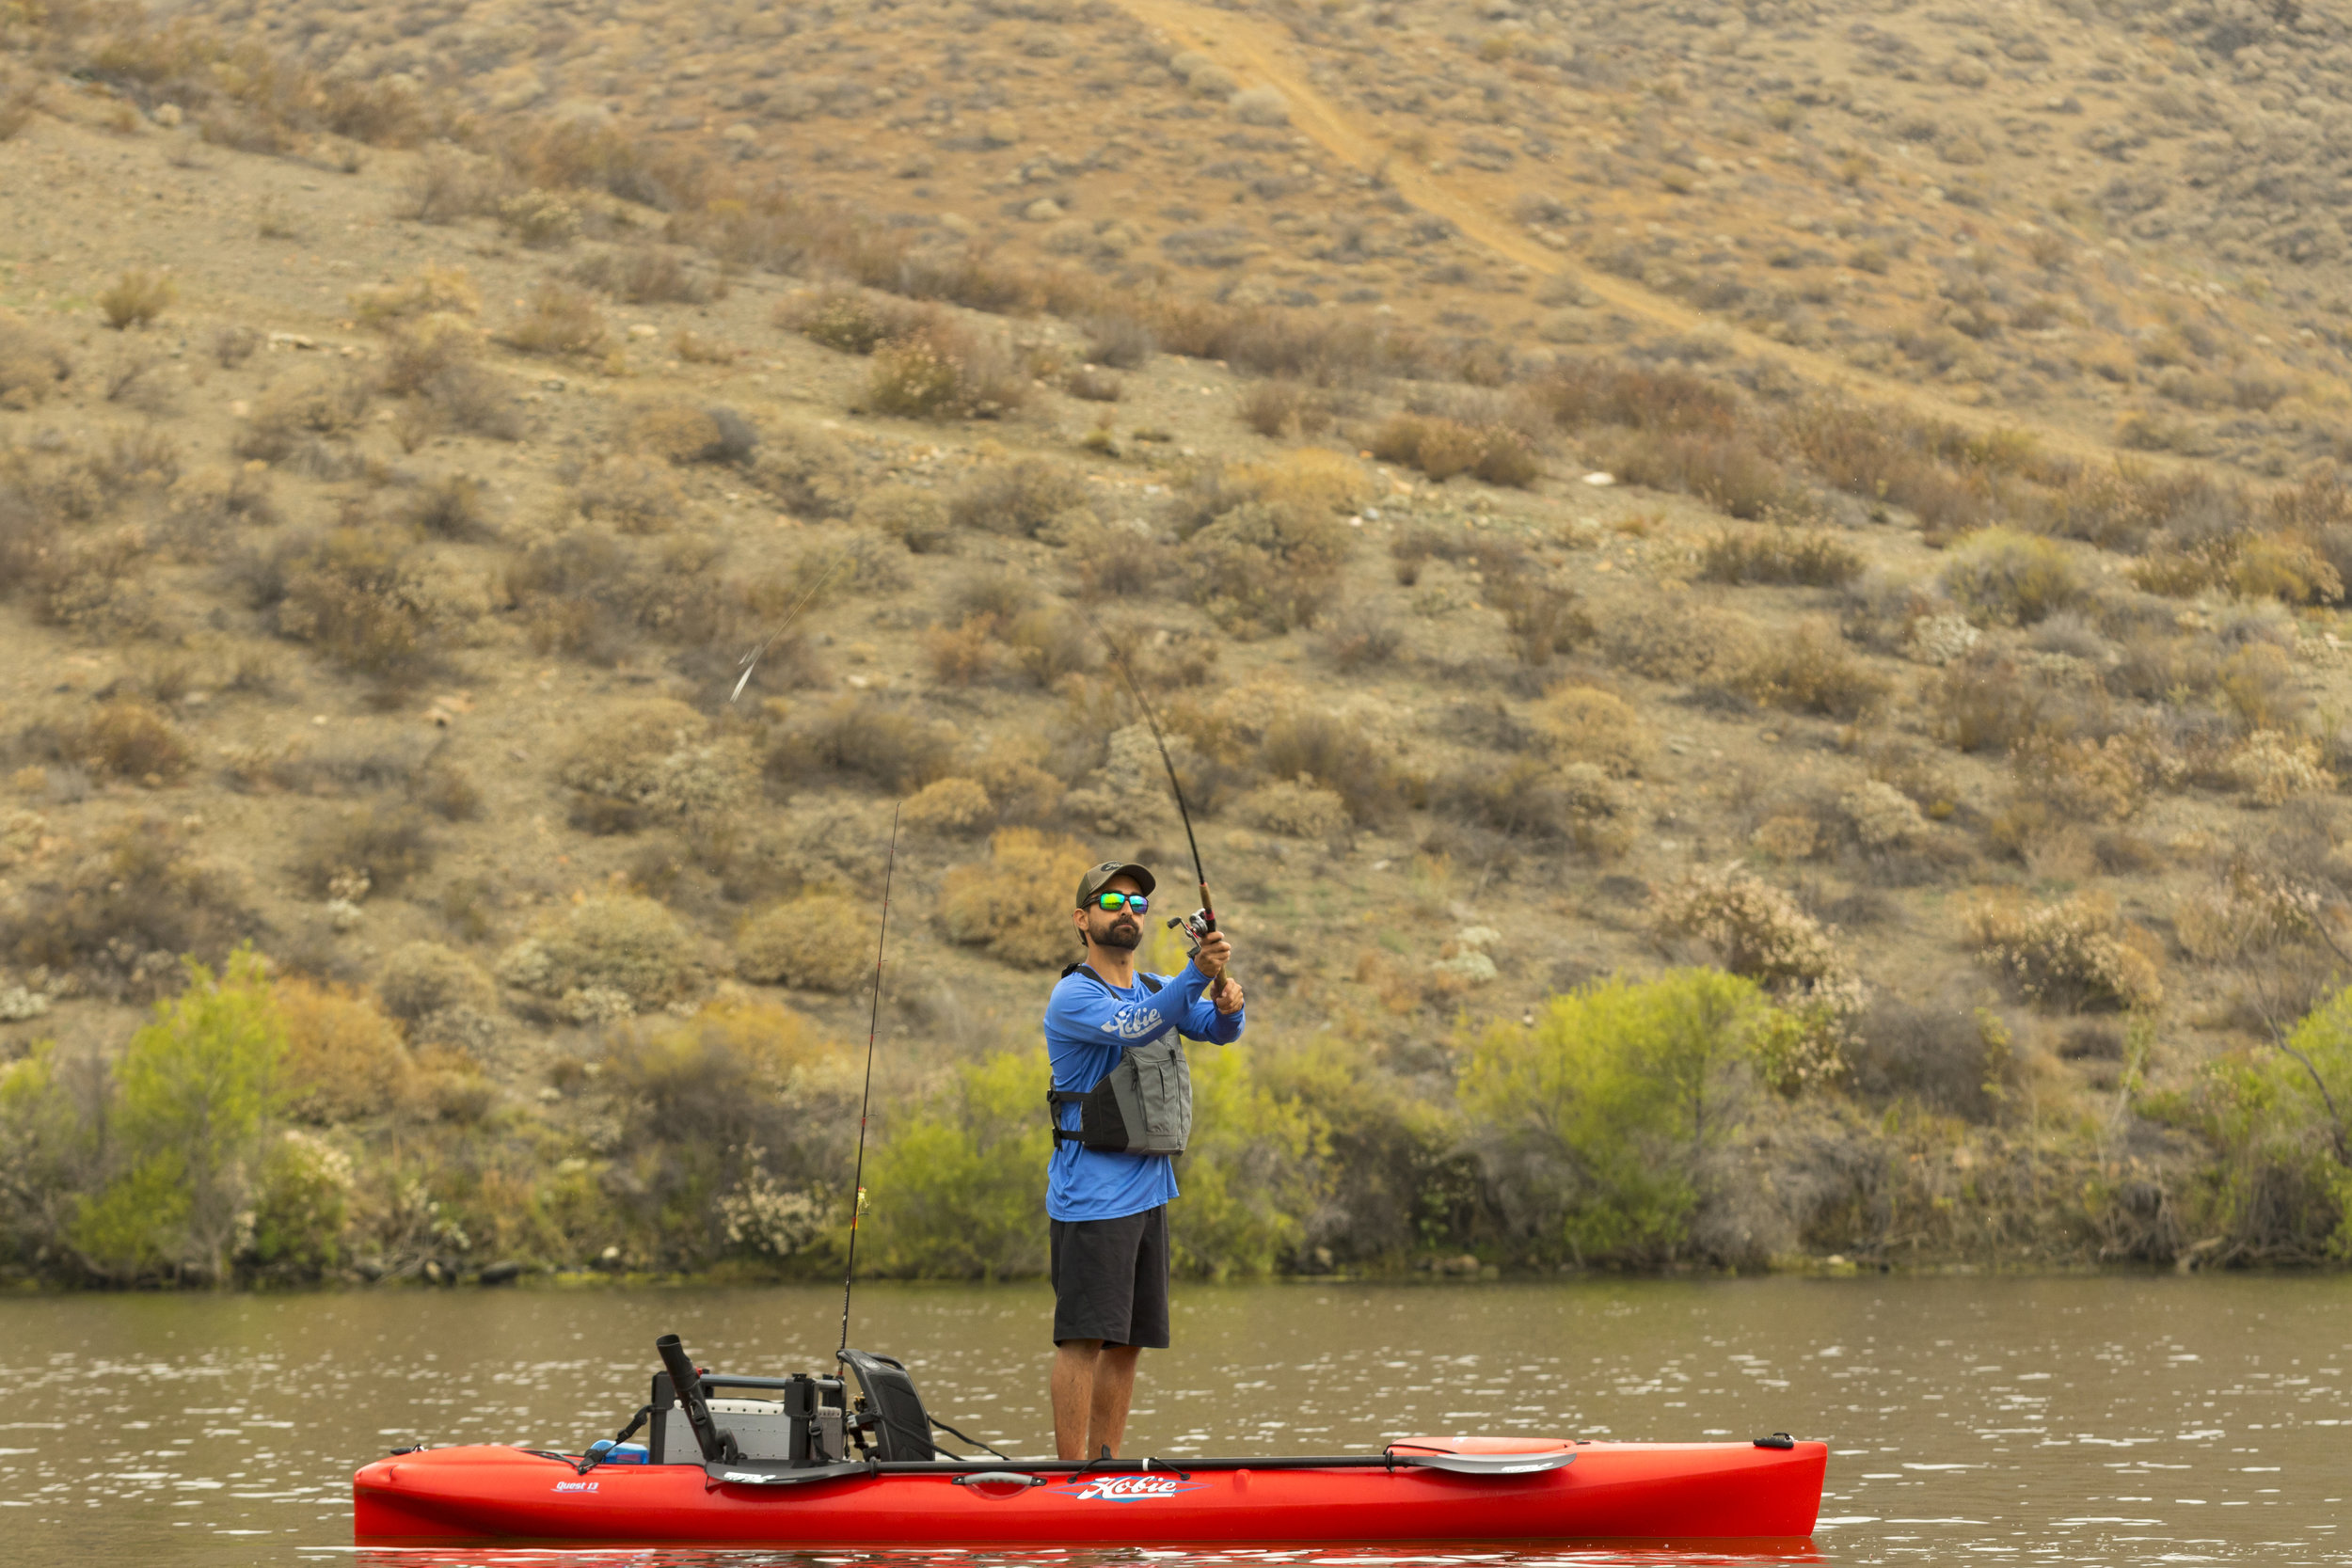 Quest13_fishing_Howie_CanyonLake_Standing_Casting_8729_full.jpg